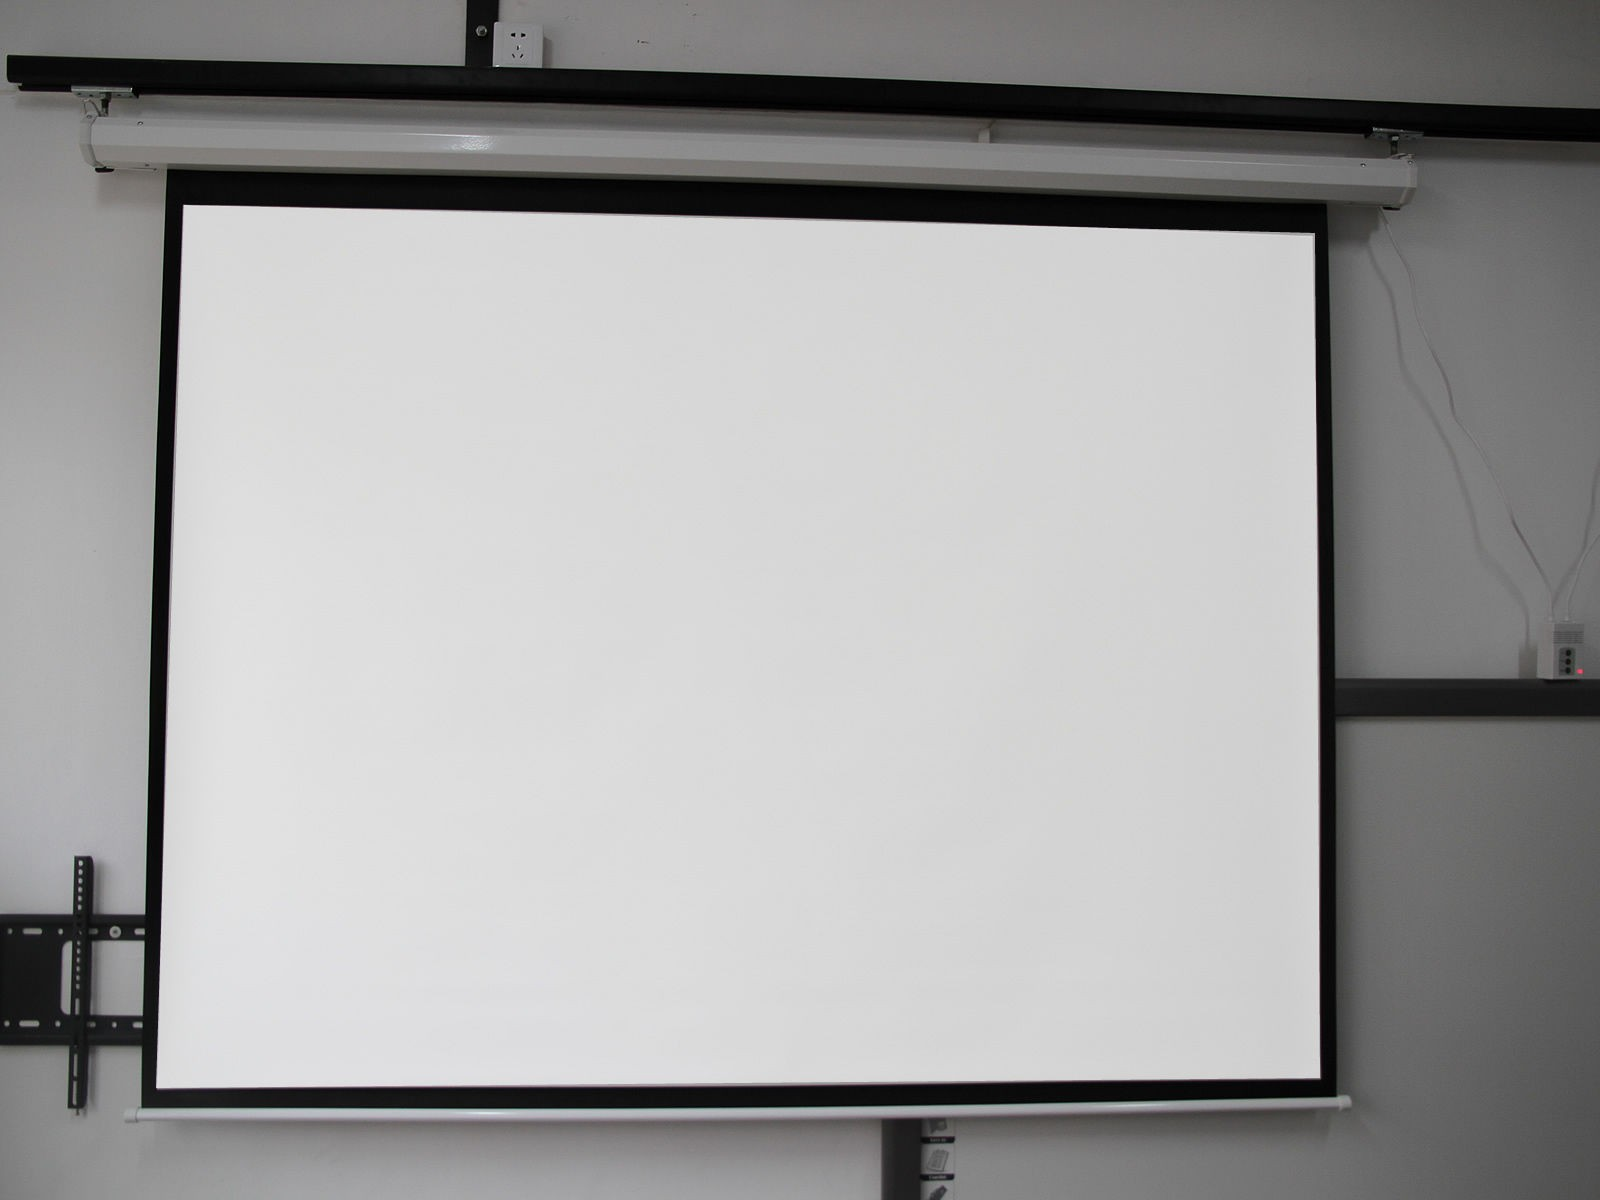 Motorized Electric Auto Projector Projection Screen 100